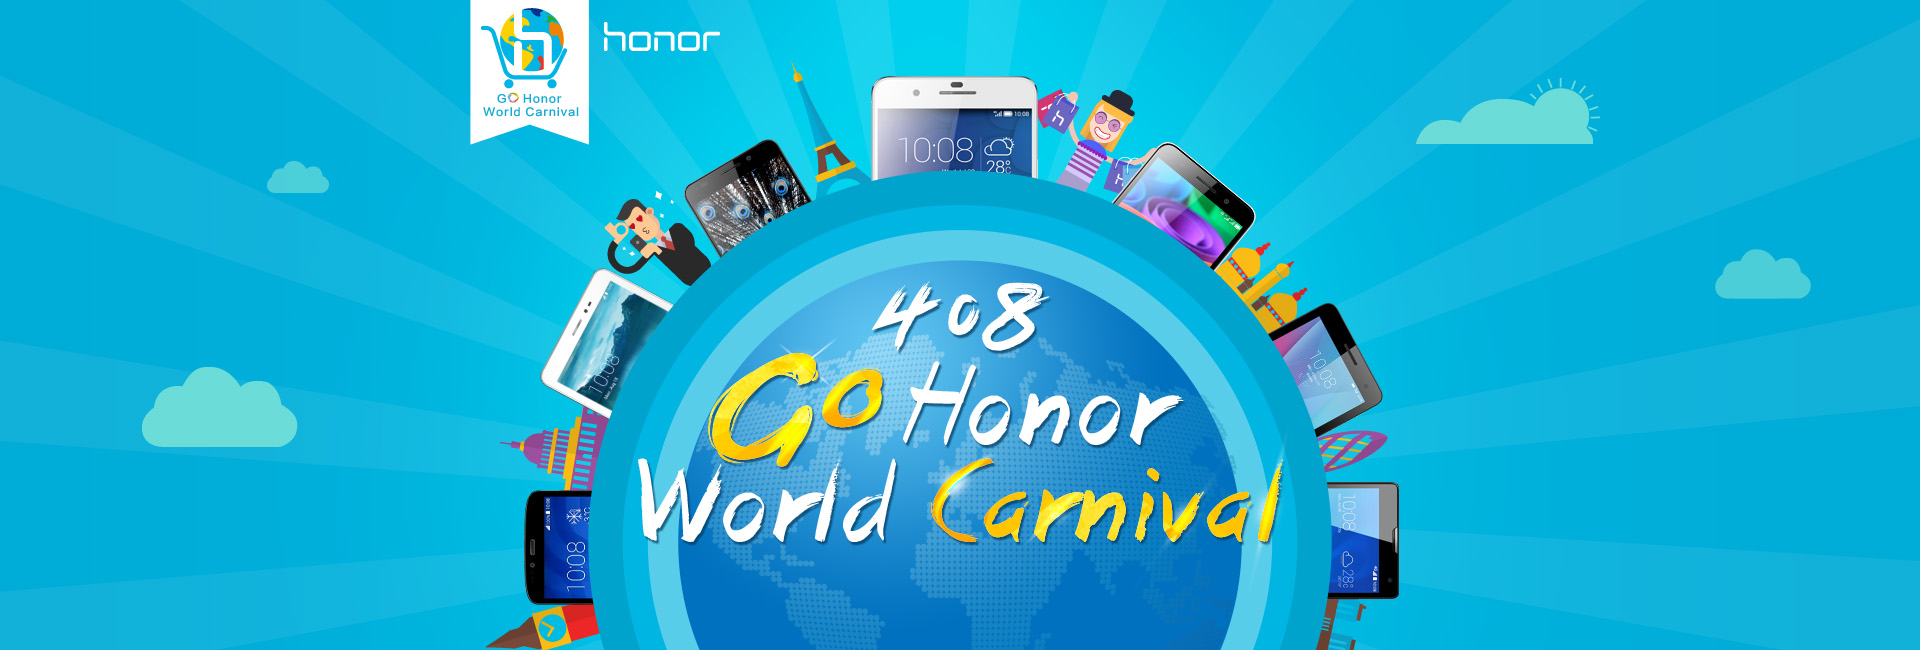 8 aprile 2015: Go Honor World Carnival